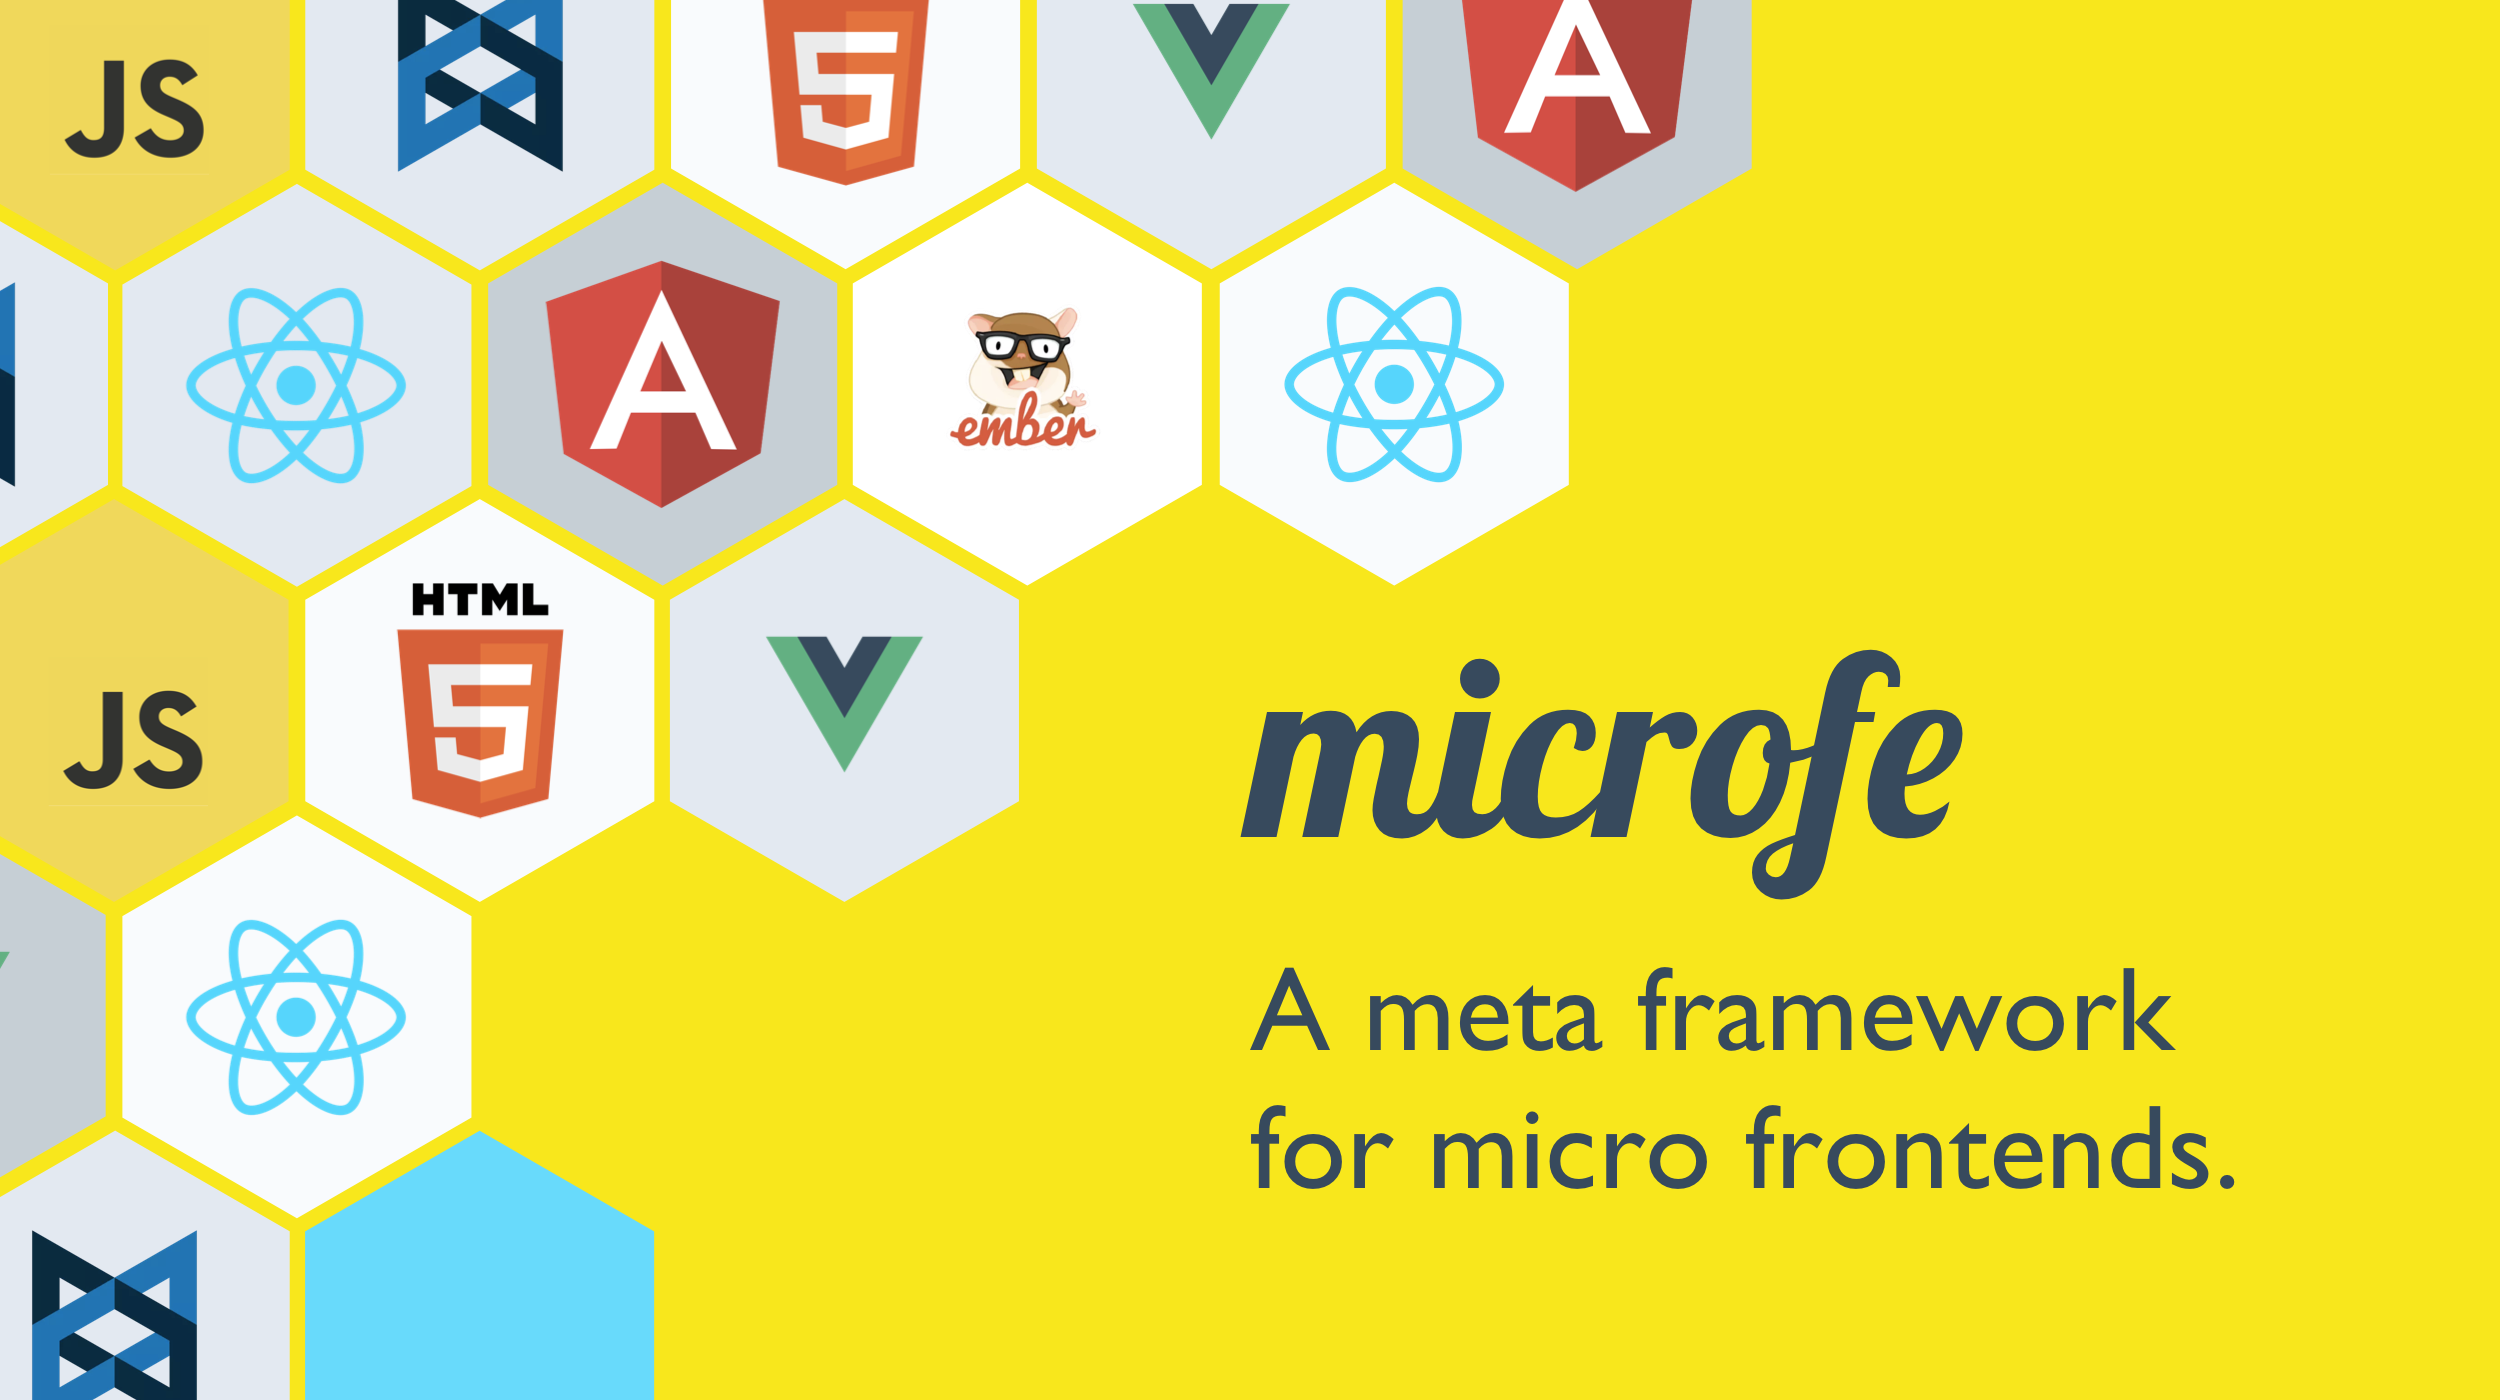 /understanding-micro-frontends-b1c11585a297 feature image